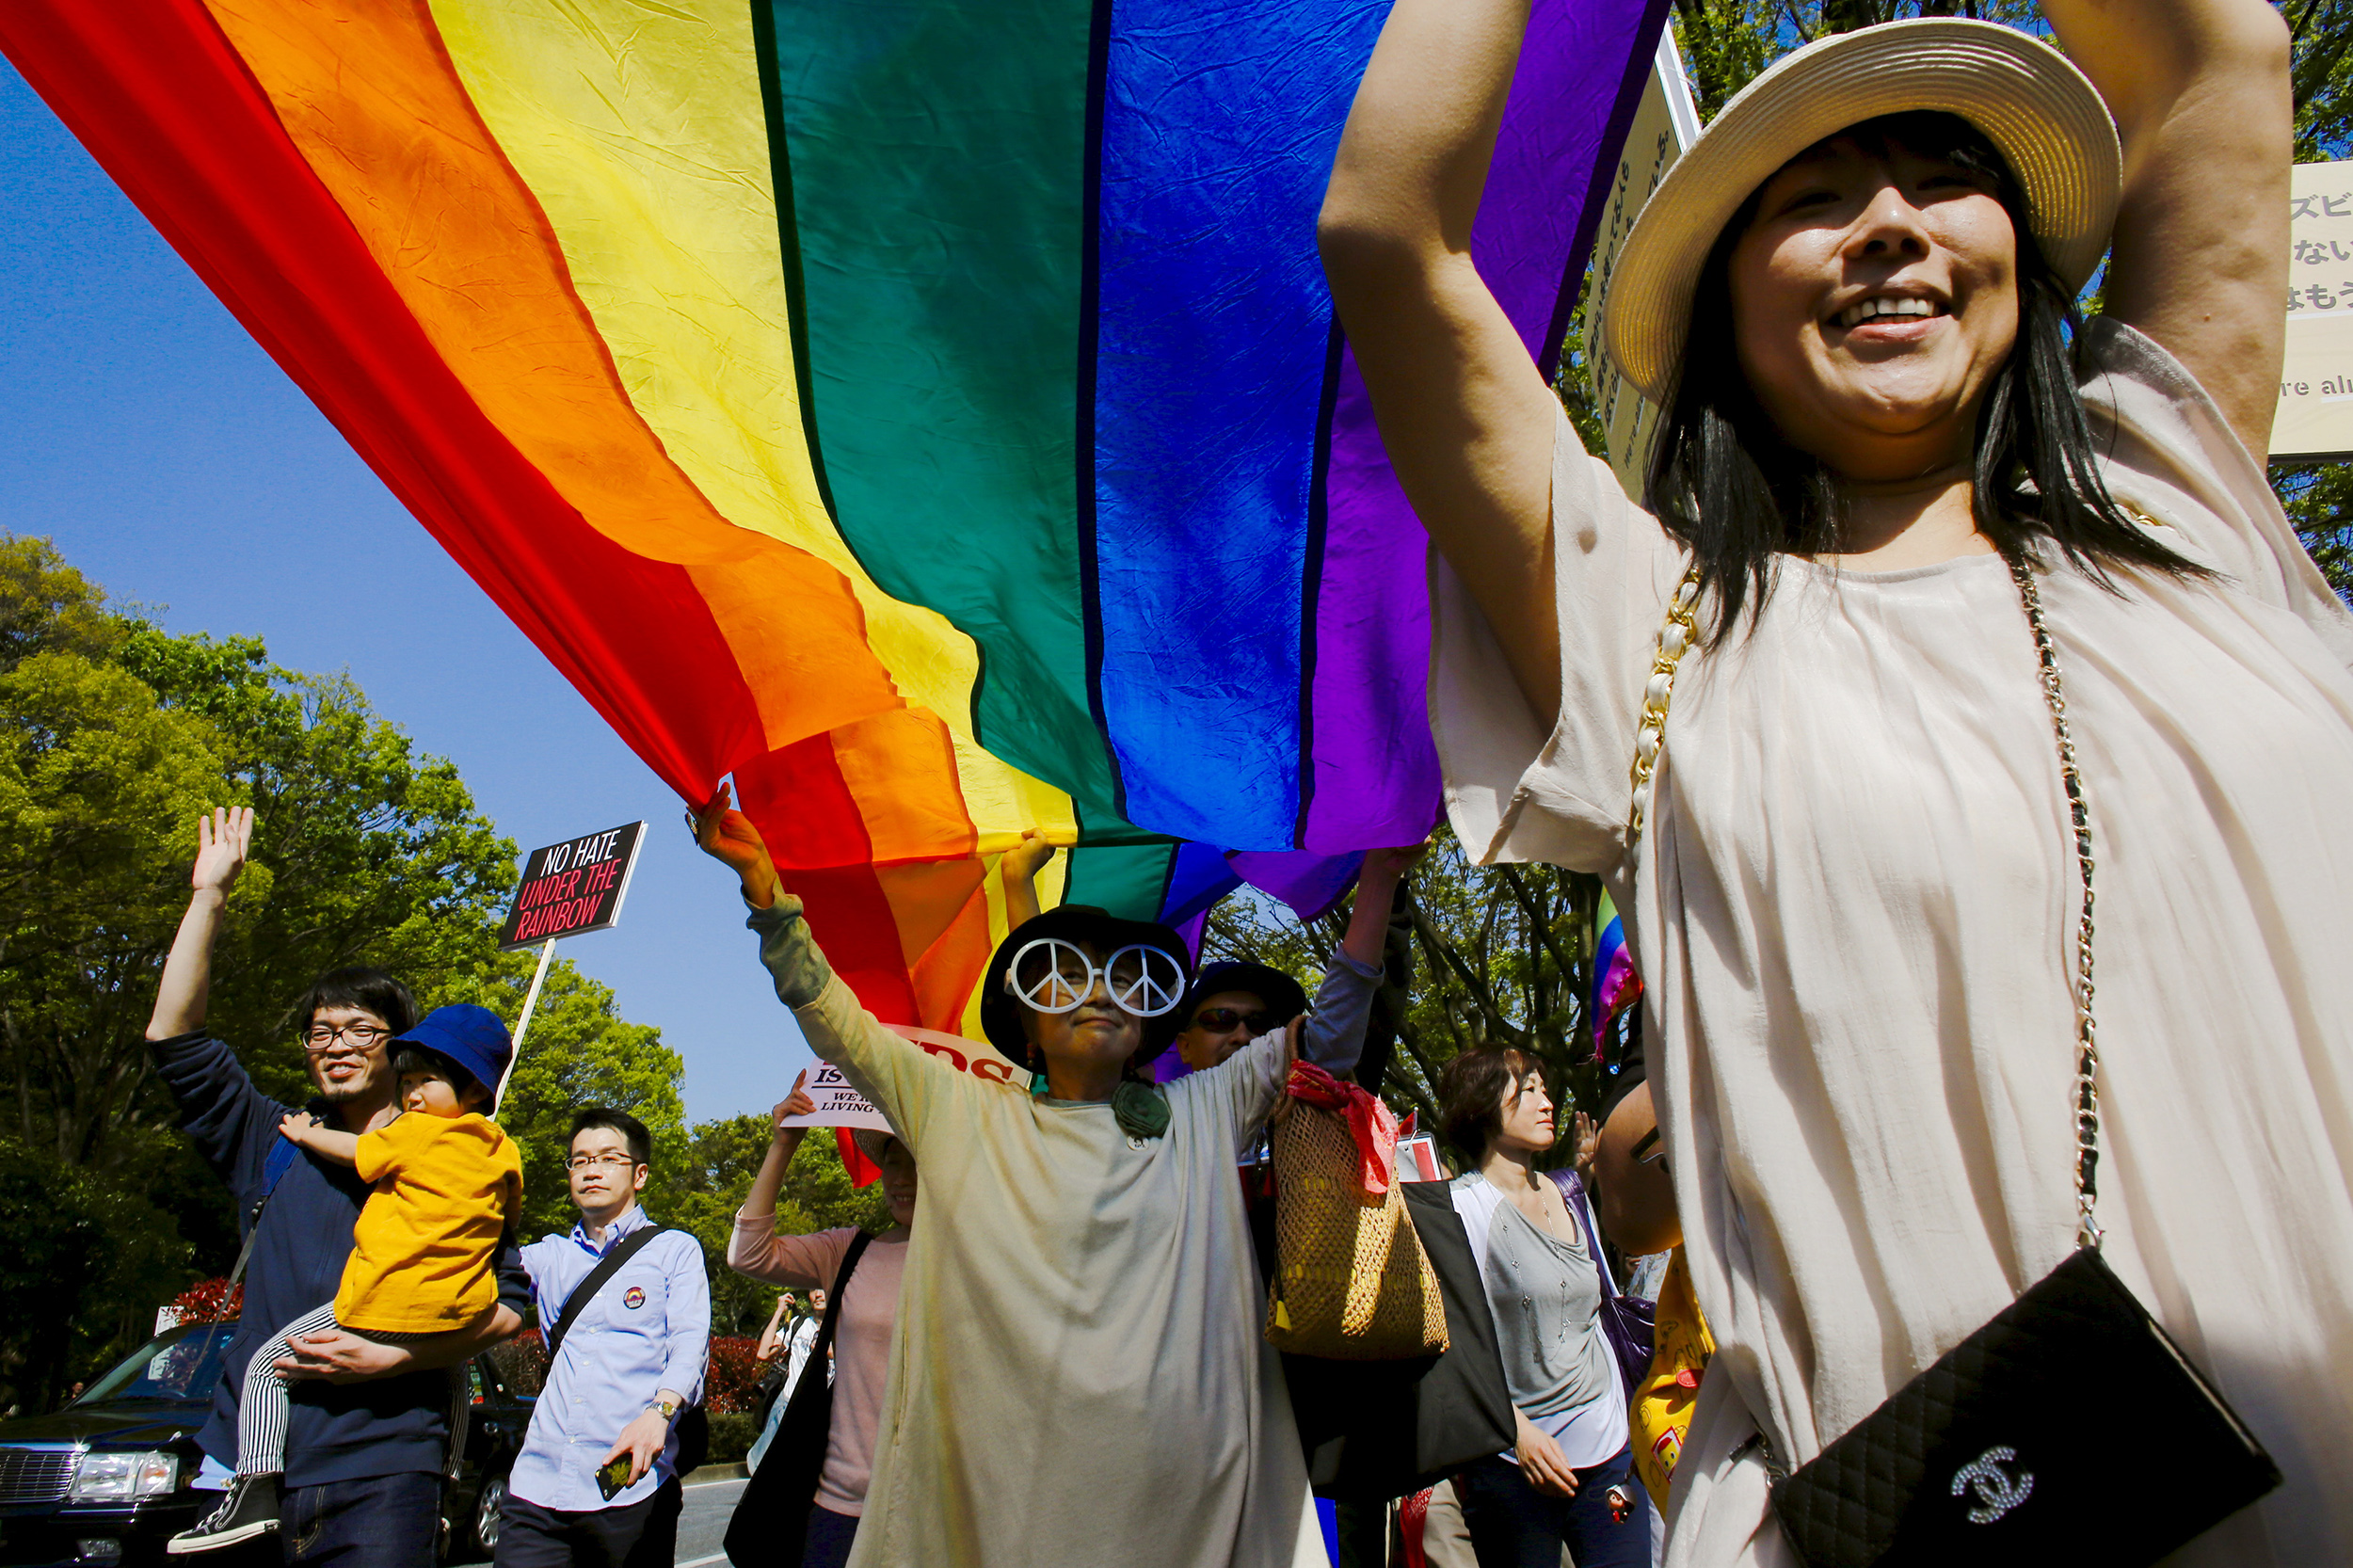 Japanese MP floats idea of revising constitution to allow gay marriage